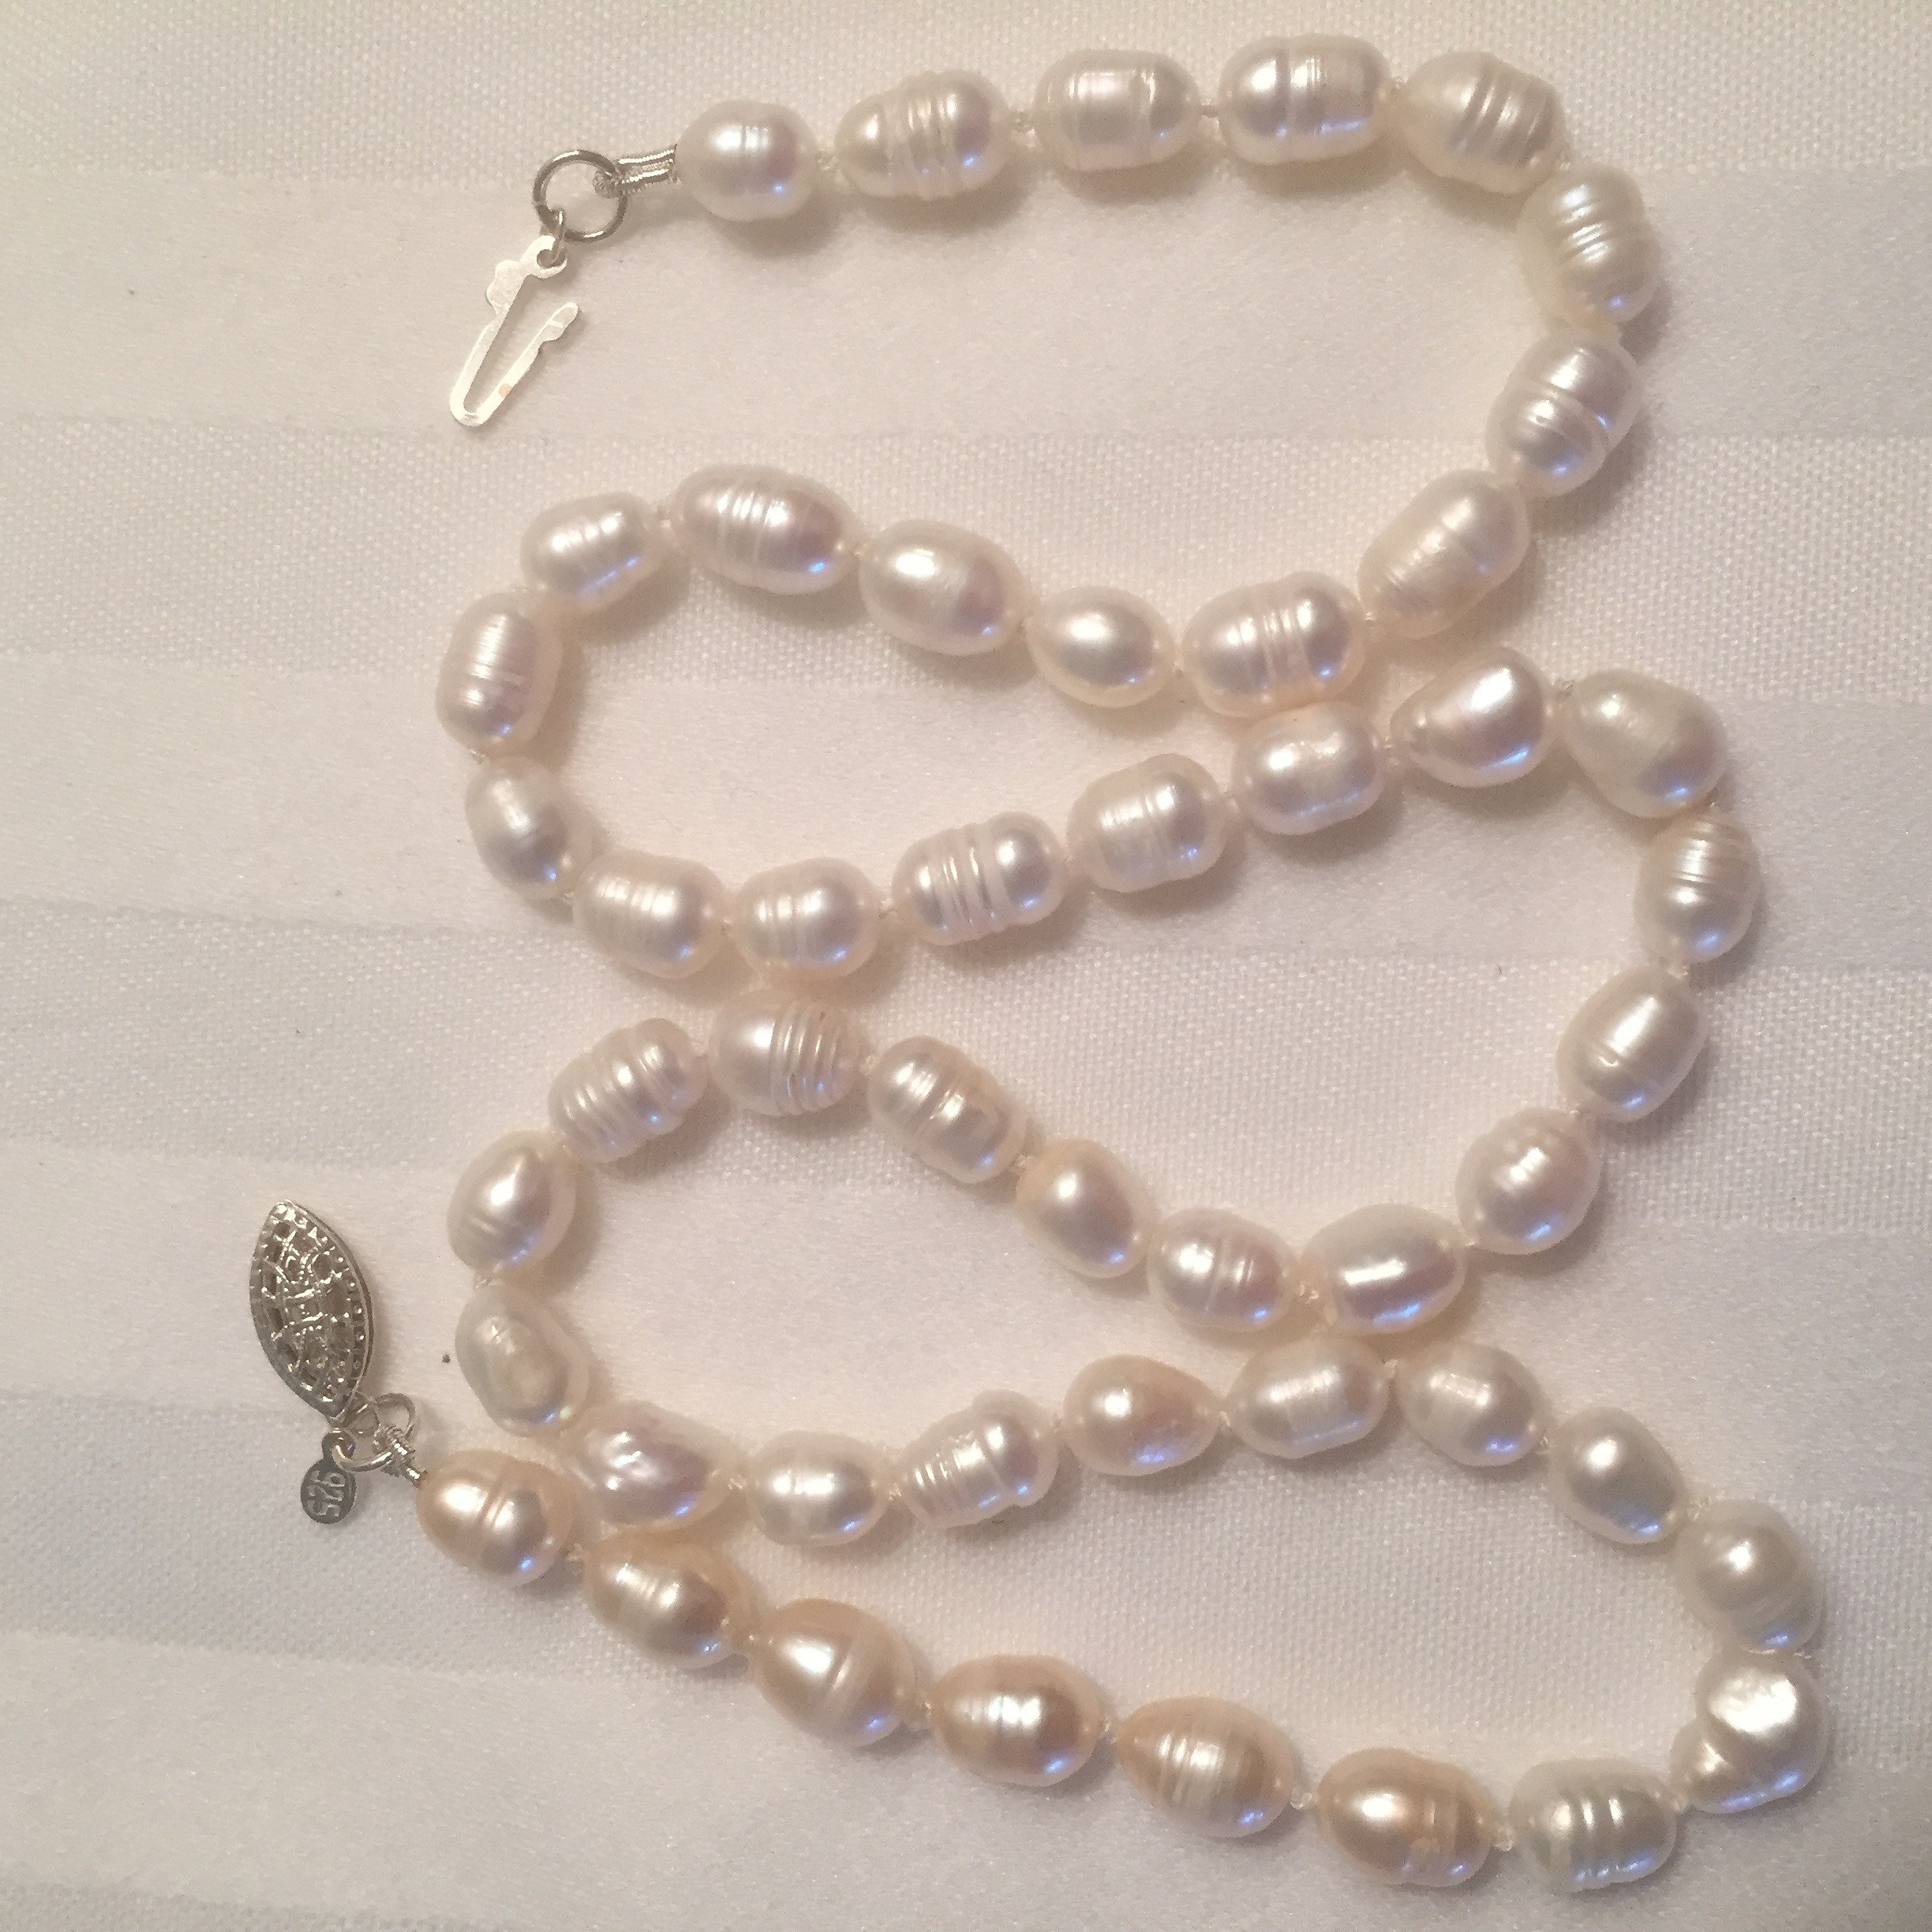 Freshwater Baroque Pearl Necklace 78mm 18 Inch